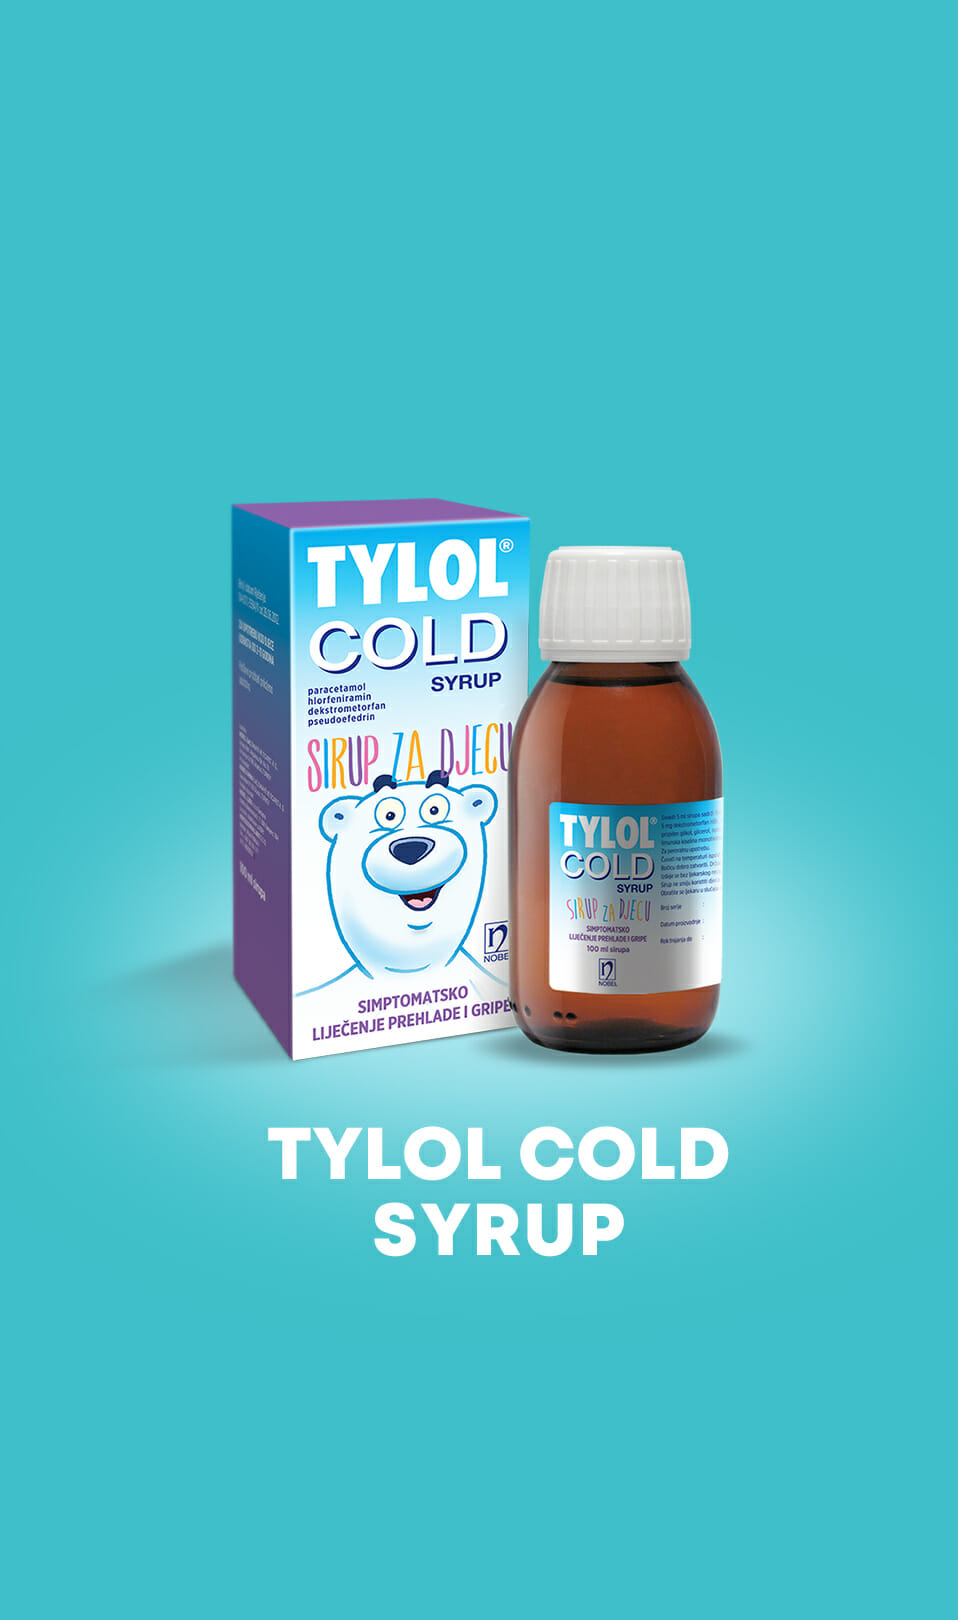 Tylol cold syrup